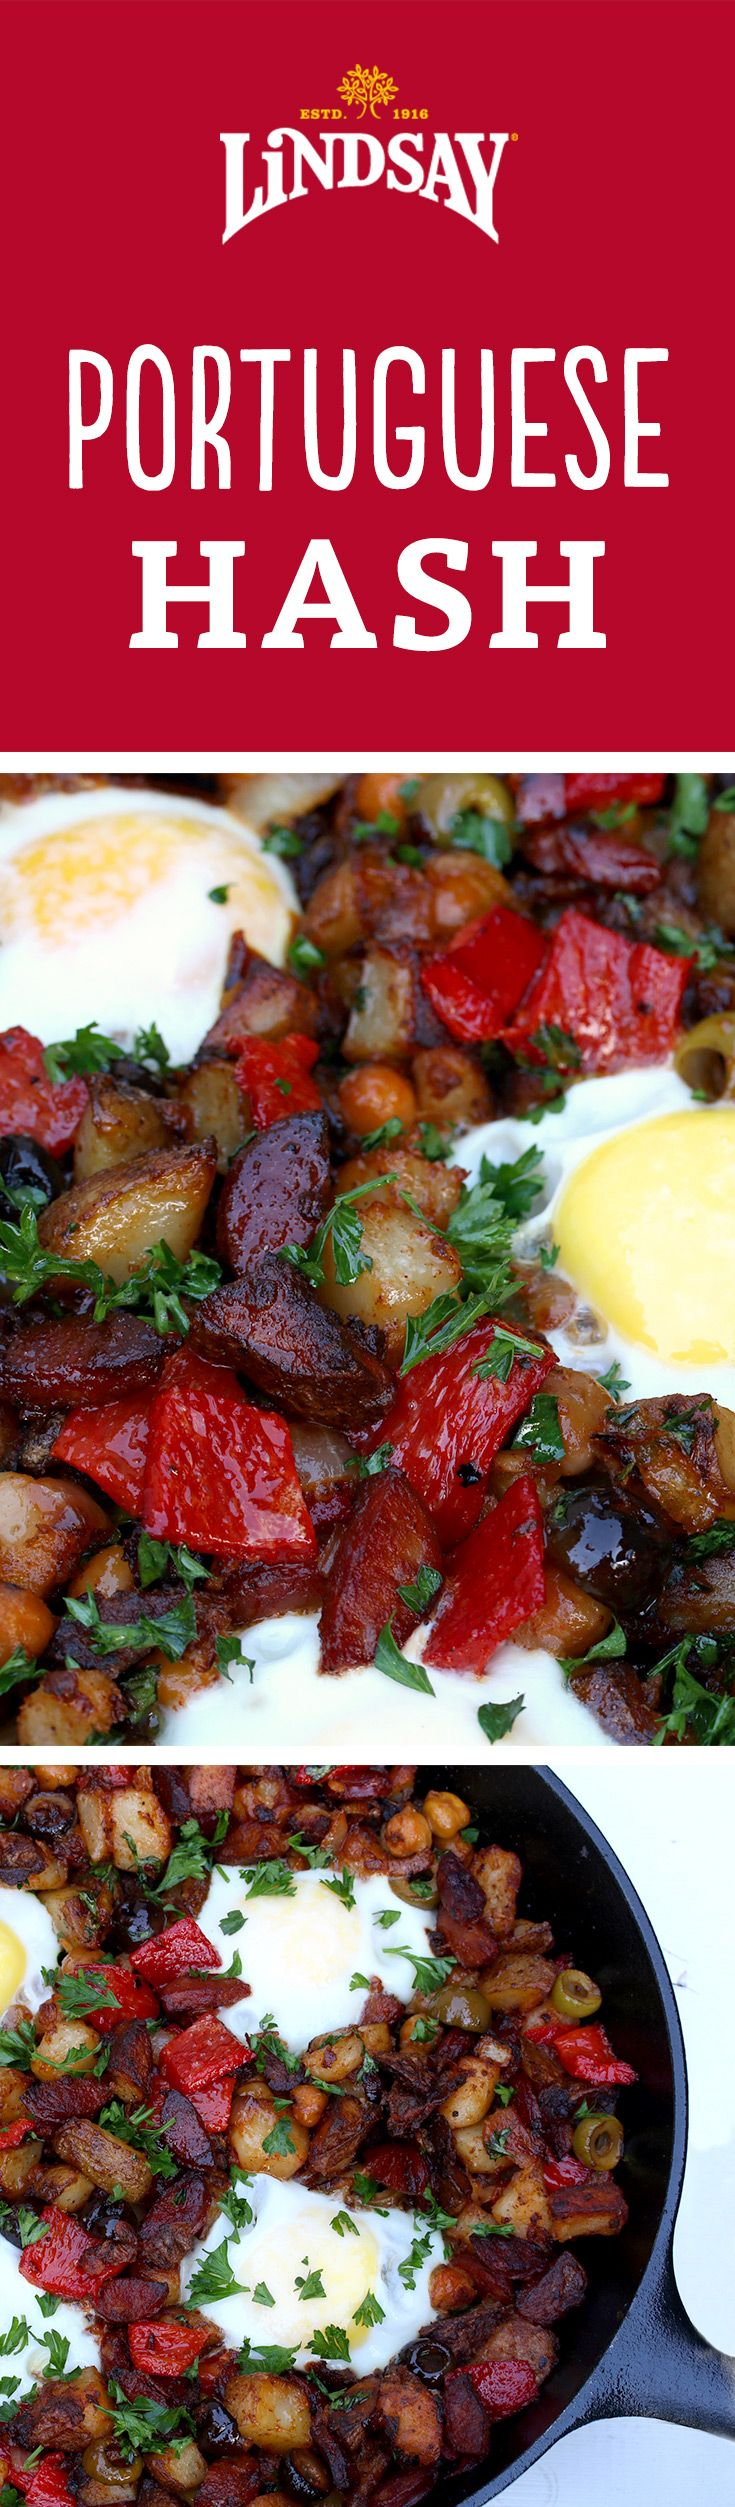 Breakfast? Or breakfast for dinner? Your choice! This Portuguese Potato Hash with linguica sausage, peppers & olives is a delicious one pot recipe for fall and winter!